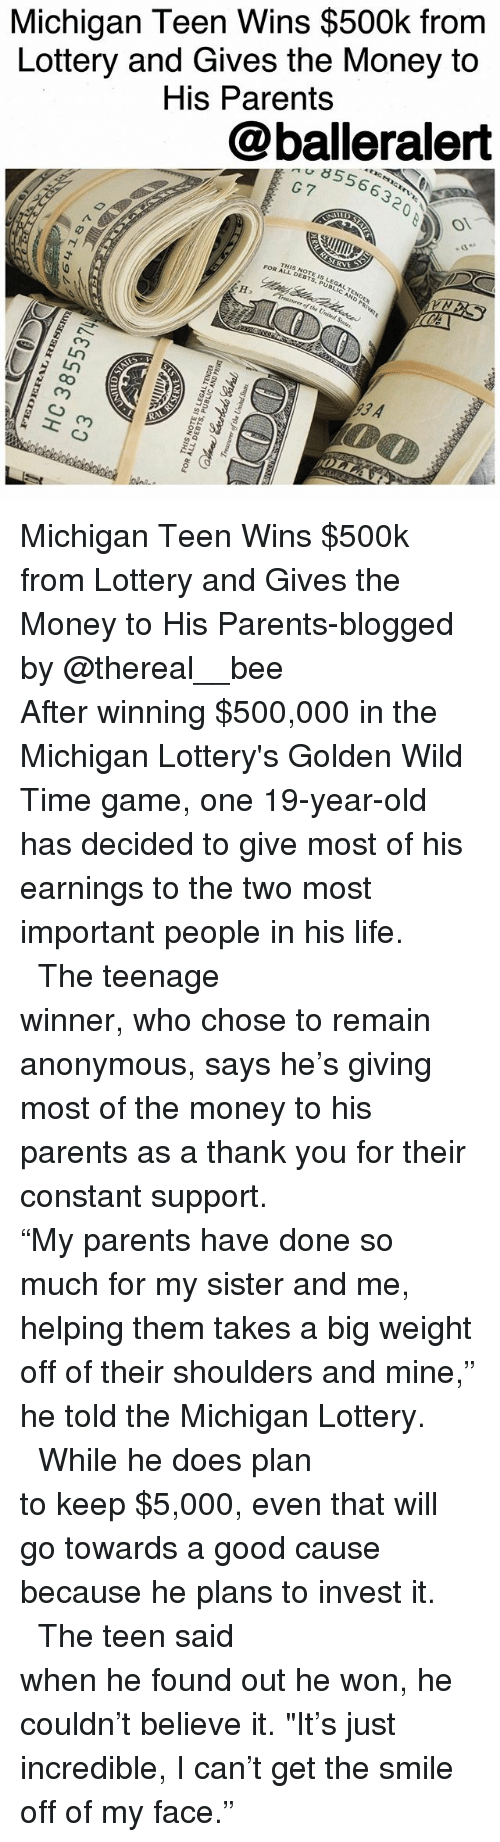 """Memes, 🤖, and Als: Michigan Teen Wins $500k from  Lottery and Gives the Money to  His Parents  @balleralert  8556632  G7  RVE  THSDEBTS,PUBLIC AND PRIVAt  NOTE SLEGAL, TENDER  FOR AL-NOTE I  ure of the United States  93 A  R  OLLA  loan  amS 곁 pun a fIJo aarnroatL  aaaN3LTVD37 SI 3LON SIHI  Aay  011ラ  EJ  LESSBE0H  48T+1 9 Michigan Teen Wins $500k from Lottery and Gives the Money to His Parents-blogged by @thereal__bee ⠀⠀⠀⠀⠀⠀⠀⠀⠀ ⠀⠀⠀⠀⠀⠀⠀⠀⠀ After winning $500,000 in the Michigan Lottery's Golden Wild Time game, one 19-year-old has decided to give most of his earnings to the two most important people in his life. ⠀⠀⠀⠀⠀⠀⠀⠀⠀ ⠀⠀⠀⠀⠀⠀⠀⠀⠀ The teenage winner, who chose to remain anonymous, says he's giving most of the money to his parents as a thank you for their constant support. ⠀⠀⠀⠀⠀⠀⠀⠀⠀ ⠀⠀⠀⠀⠀⠀⠀⠀⠀ """"My parents have done so much for my sister and me, helping them takes a big weight off of their shoulders and mine,"""" he told the Michigan Lottery. ⠀⠀⠀⠀⠀⠀⠀⠀⠀ ⠀⠀⠀⠀⠀⠀⠀⠀⠀ While he does plan to keep $5,000, even that will go towards a good cause because he plans to invest it. ⠀⠀⠀⠀⠀⠀⠀⠀⠀ ⠀⠀⠀⠀⠀⠀⠀⠀⠀ The teen said when he found out he won, he couldn't believe it. """"It's just incredible, I can't get the smile off of my face."""""""